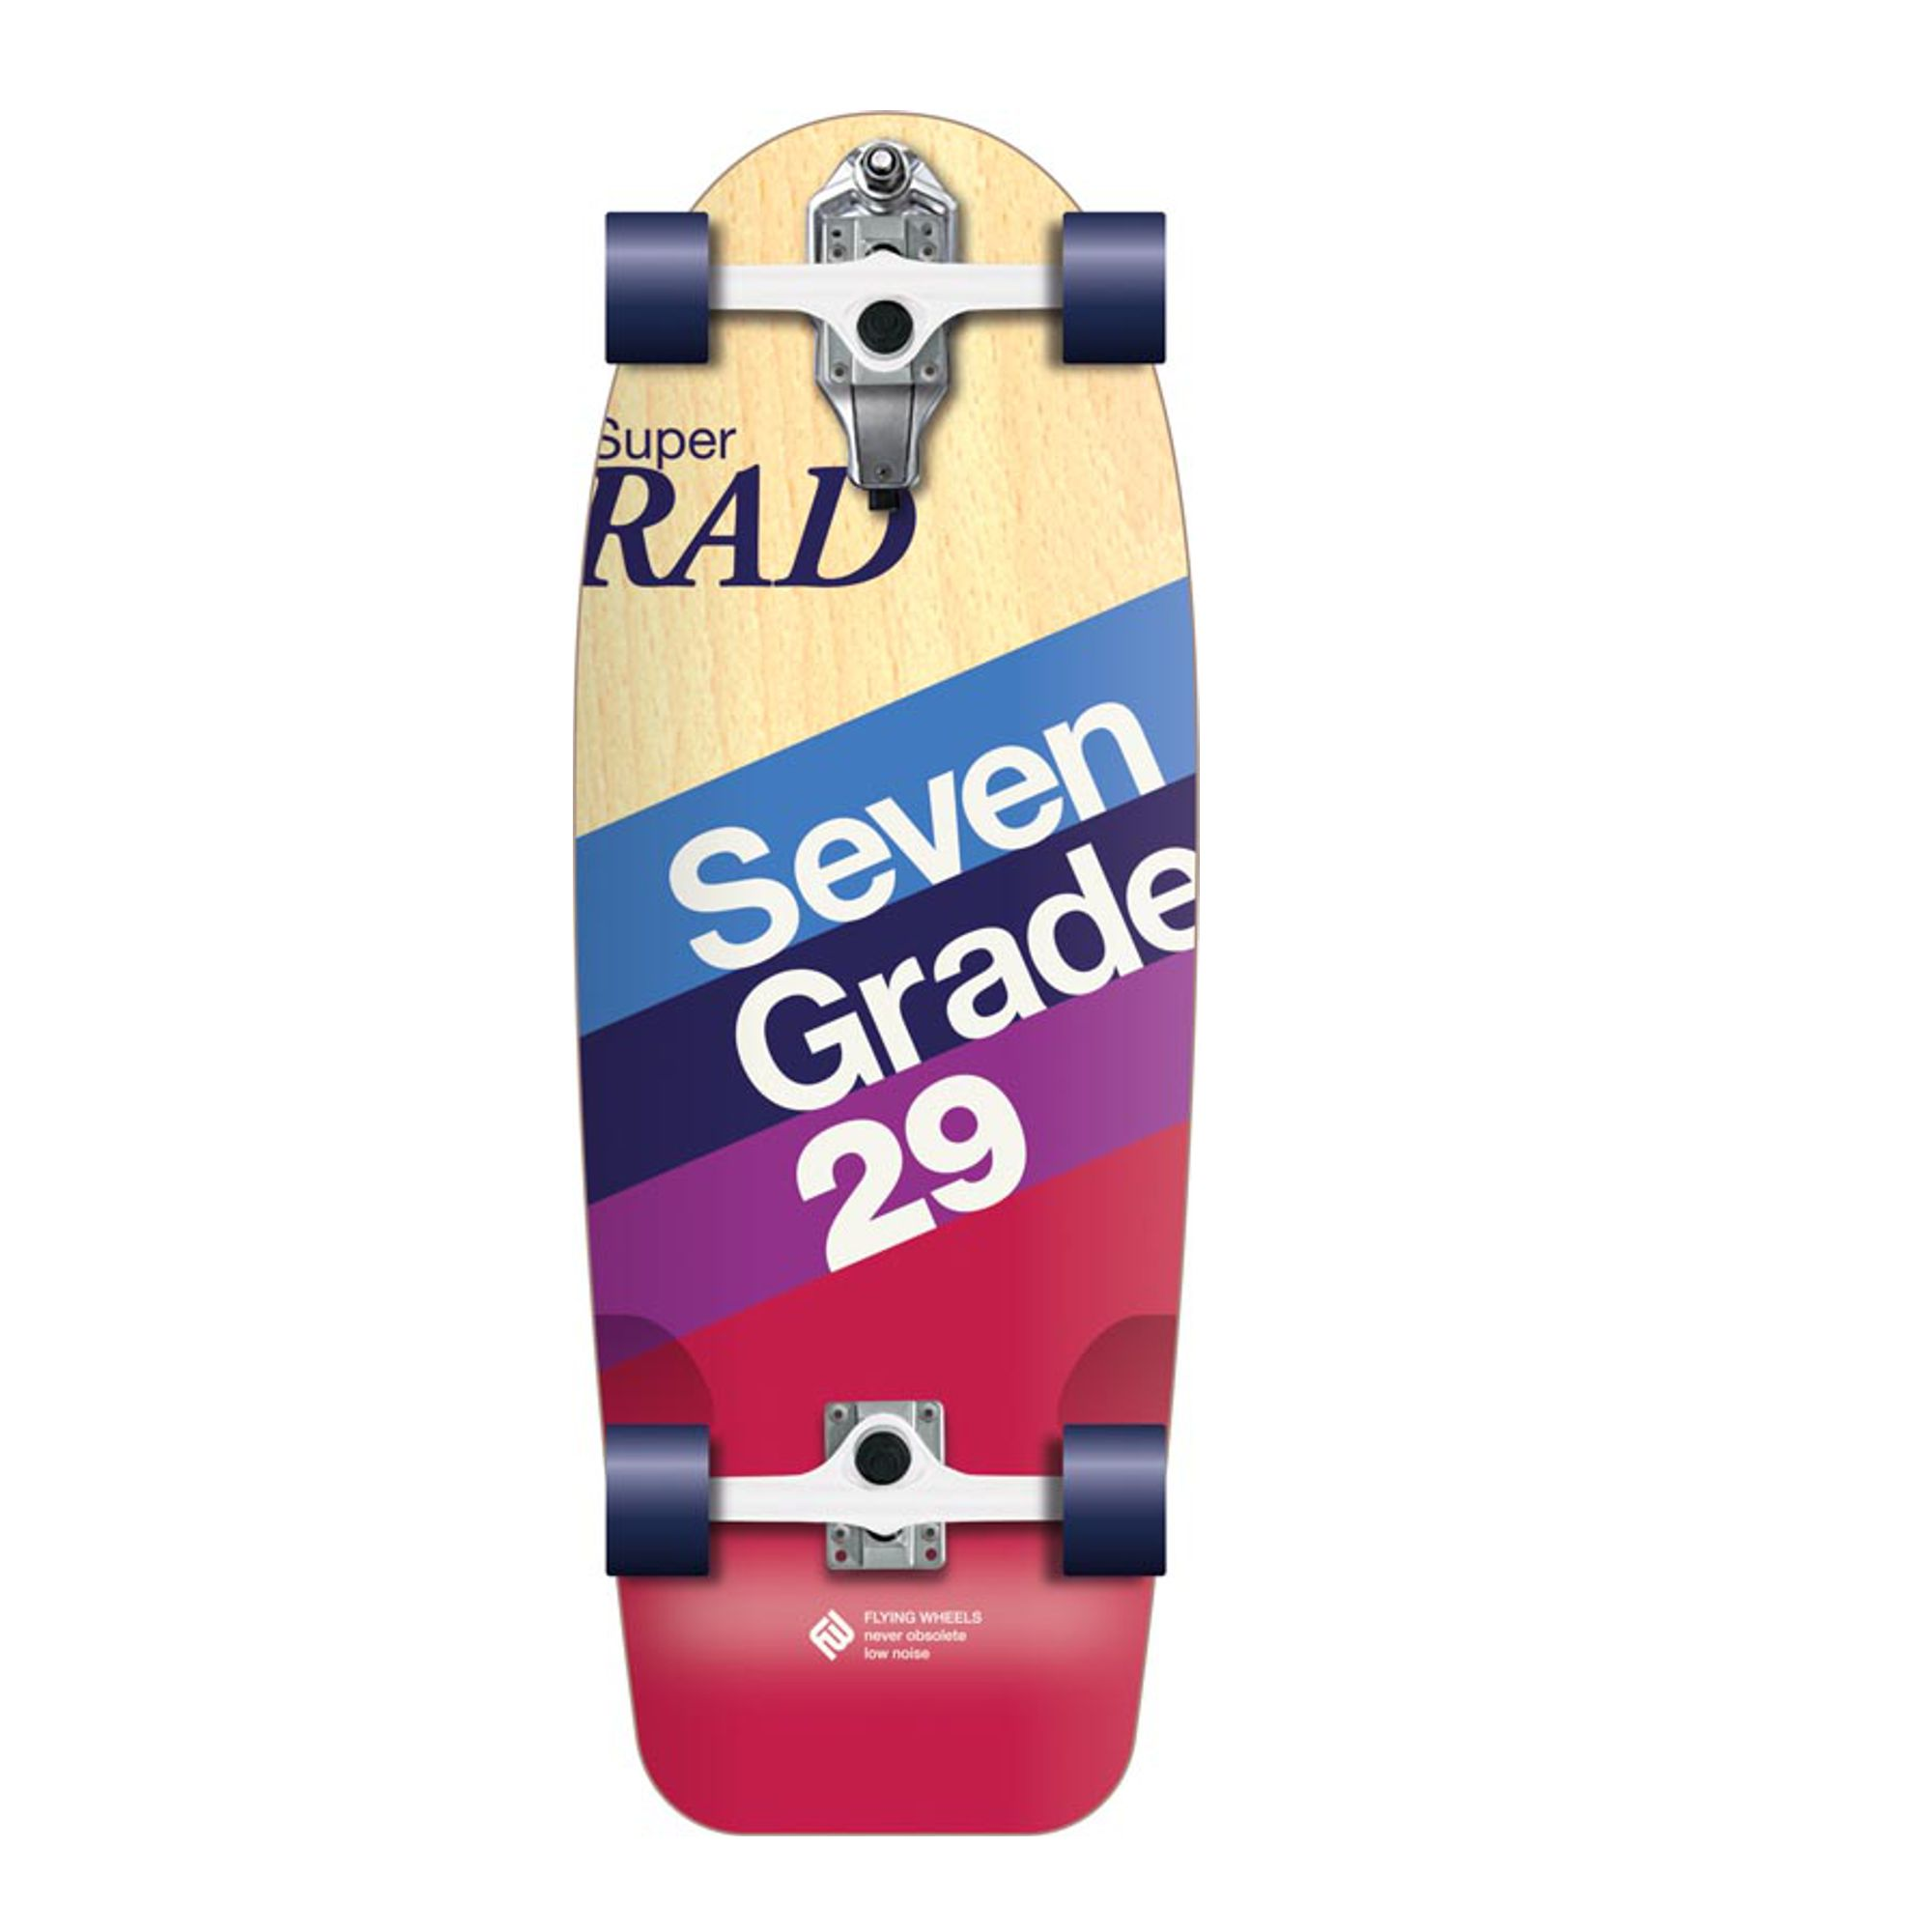 FLYING WHEELS Surf Skateboard 29 Rad Lombard Surfskate